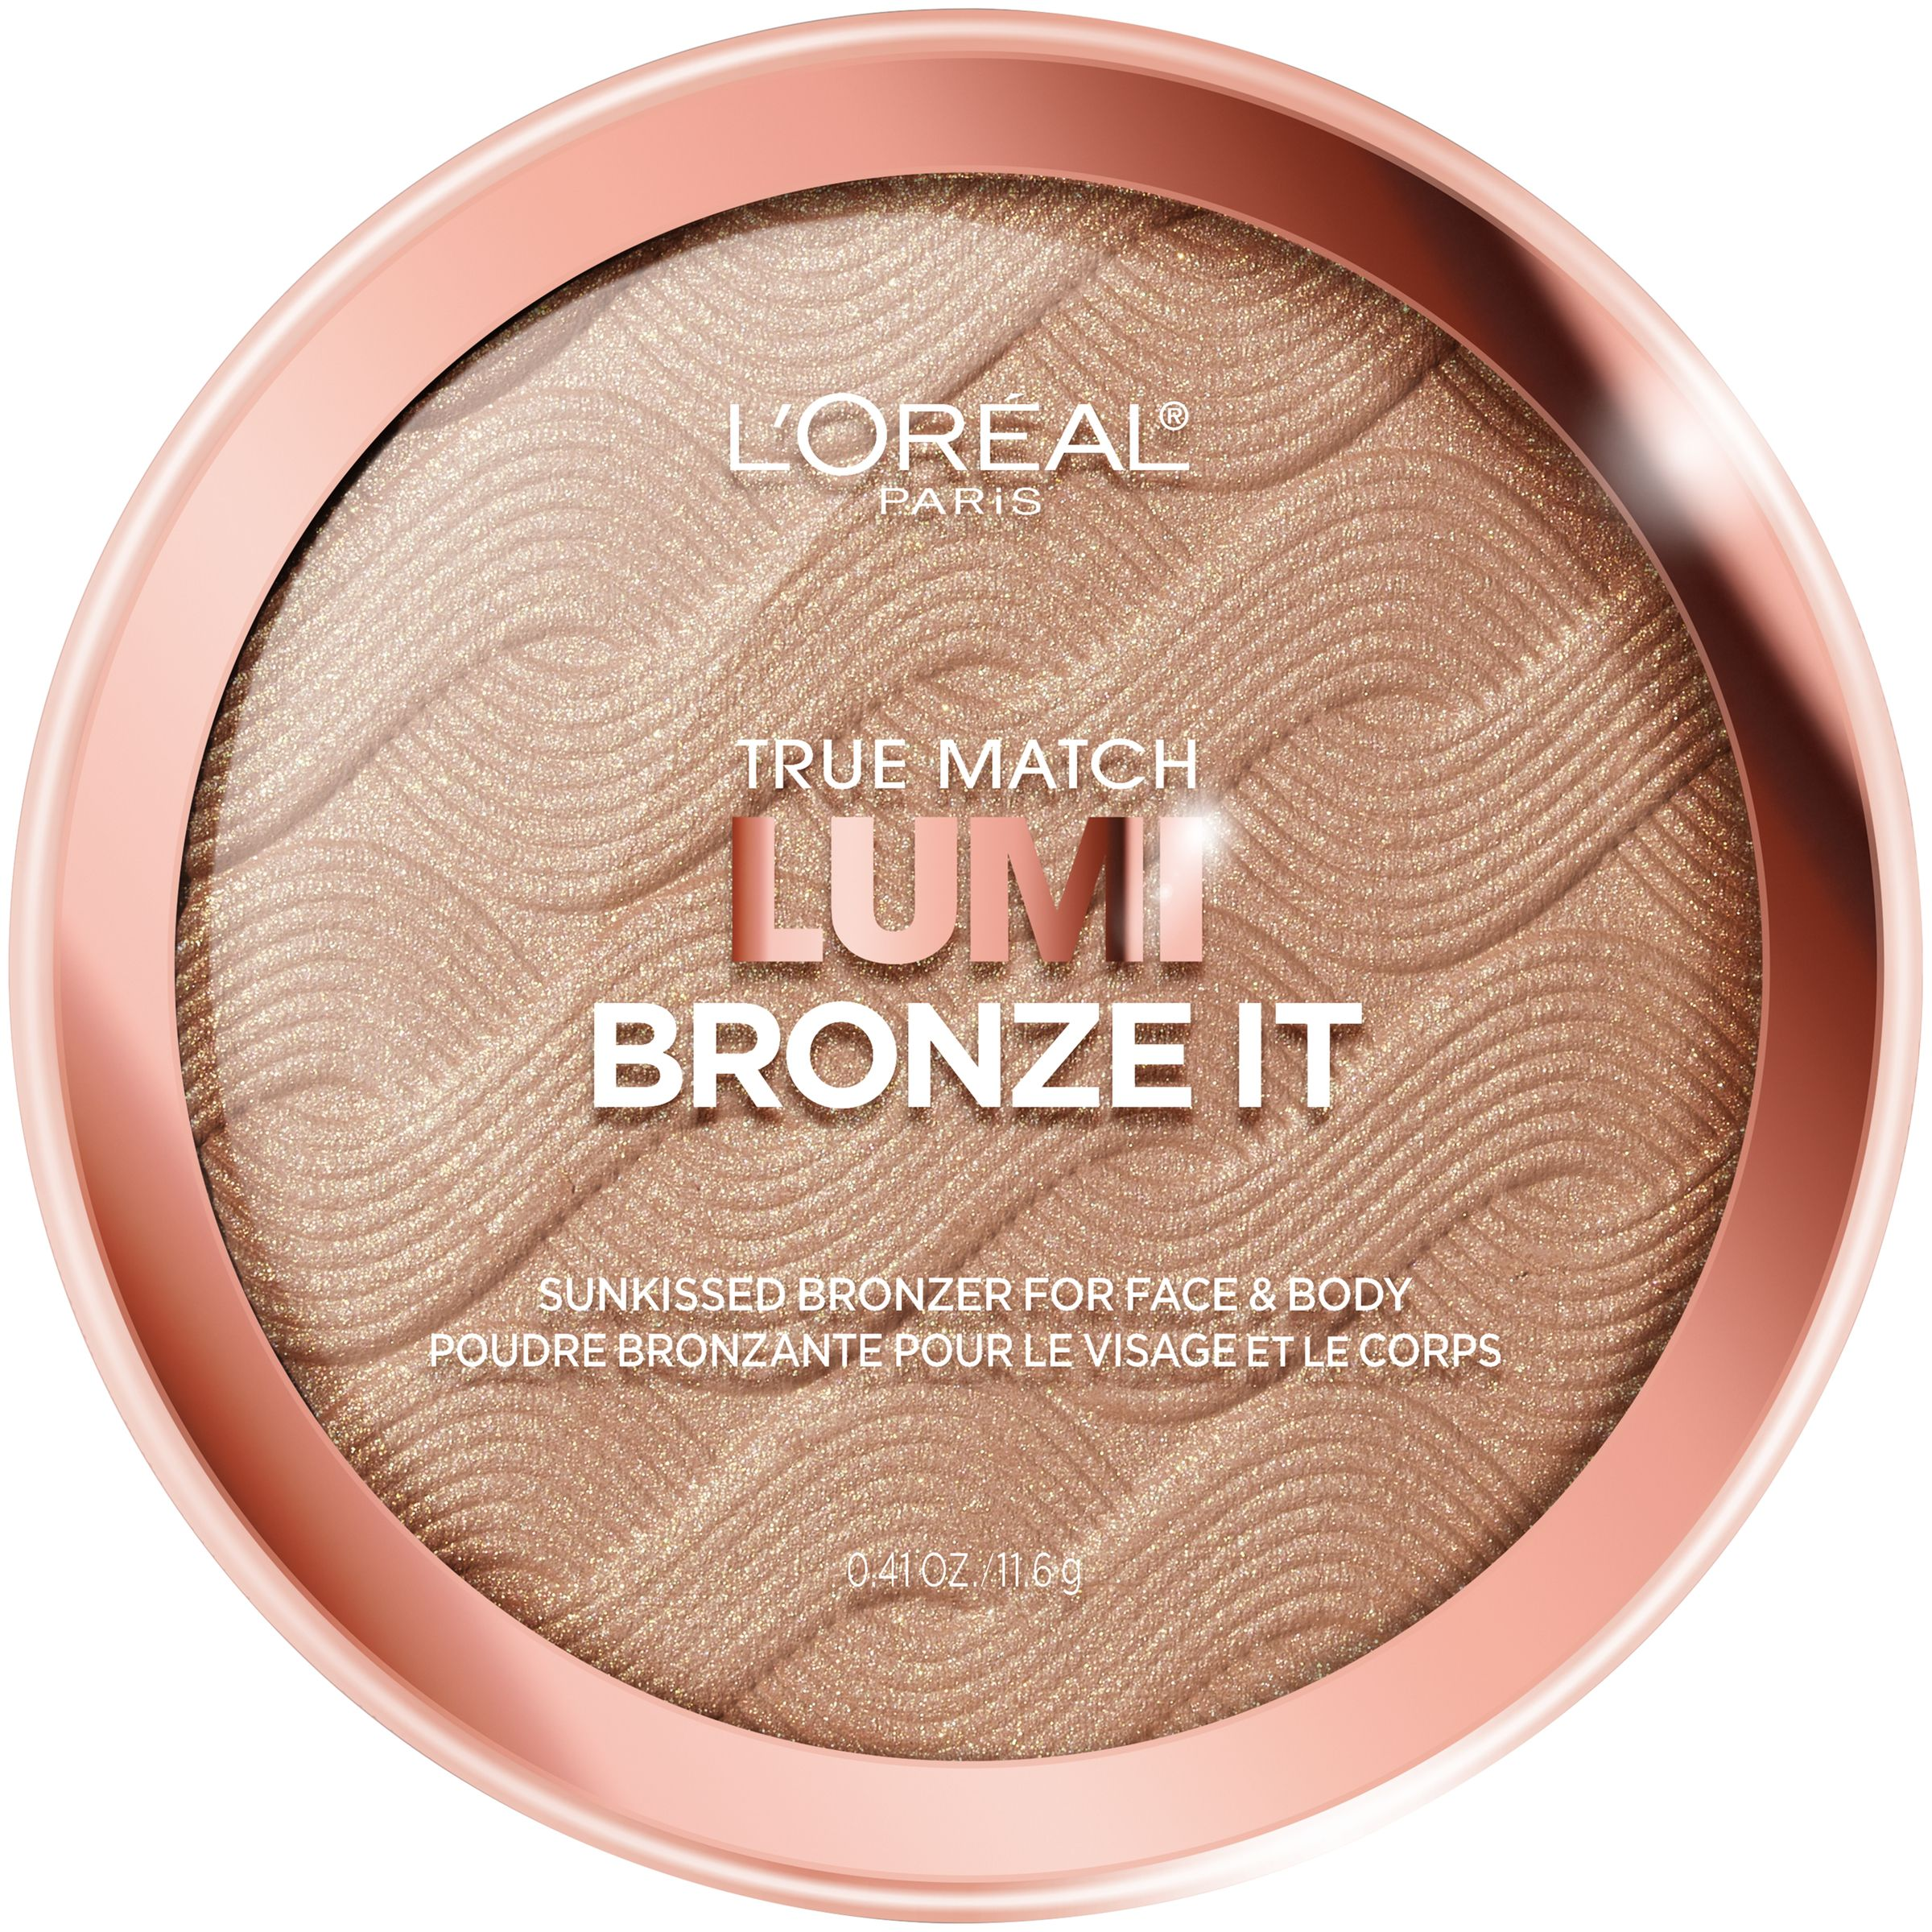 L'Oreal Paris True Match Lumi Bronze It Bronzer, Light